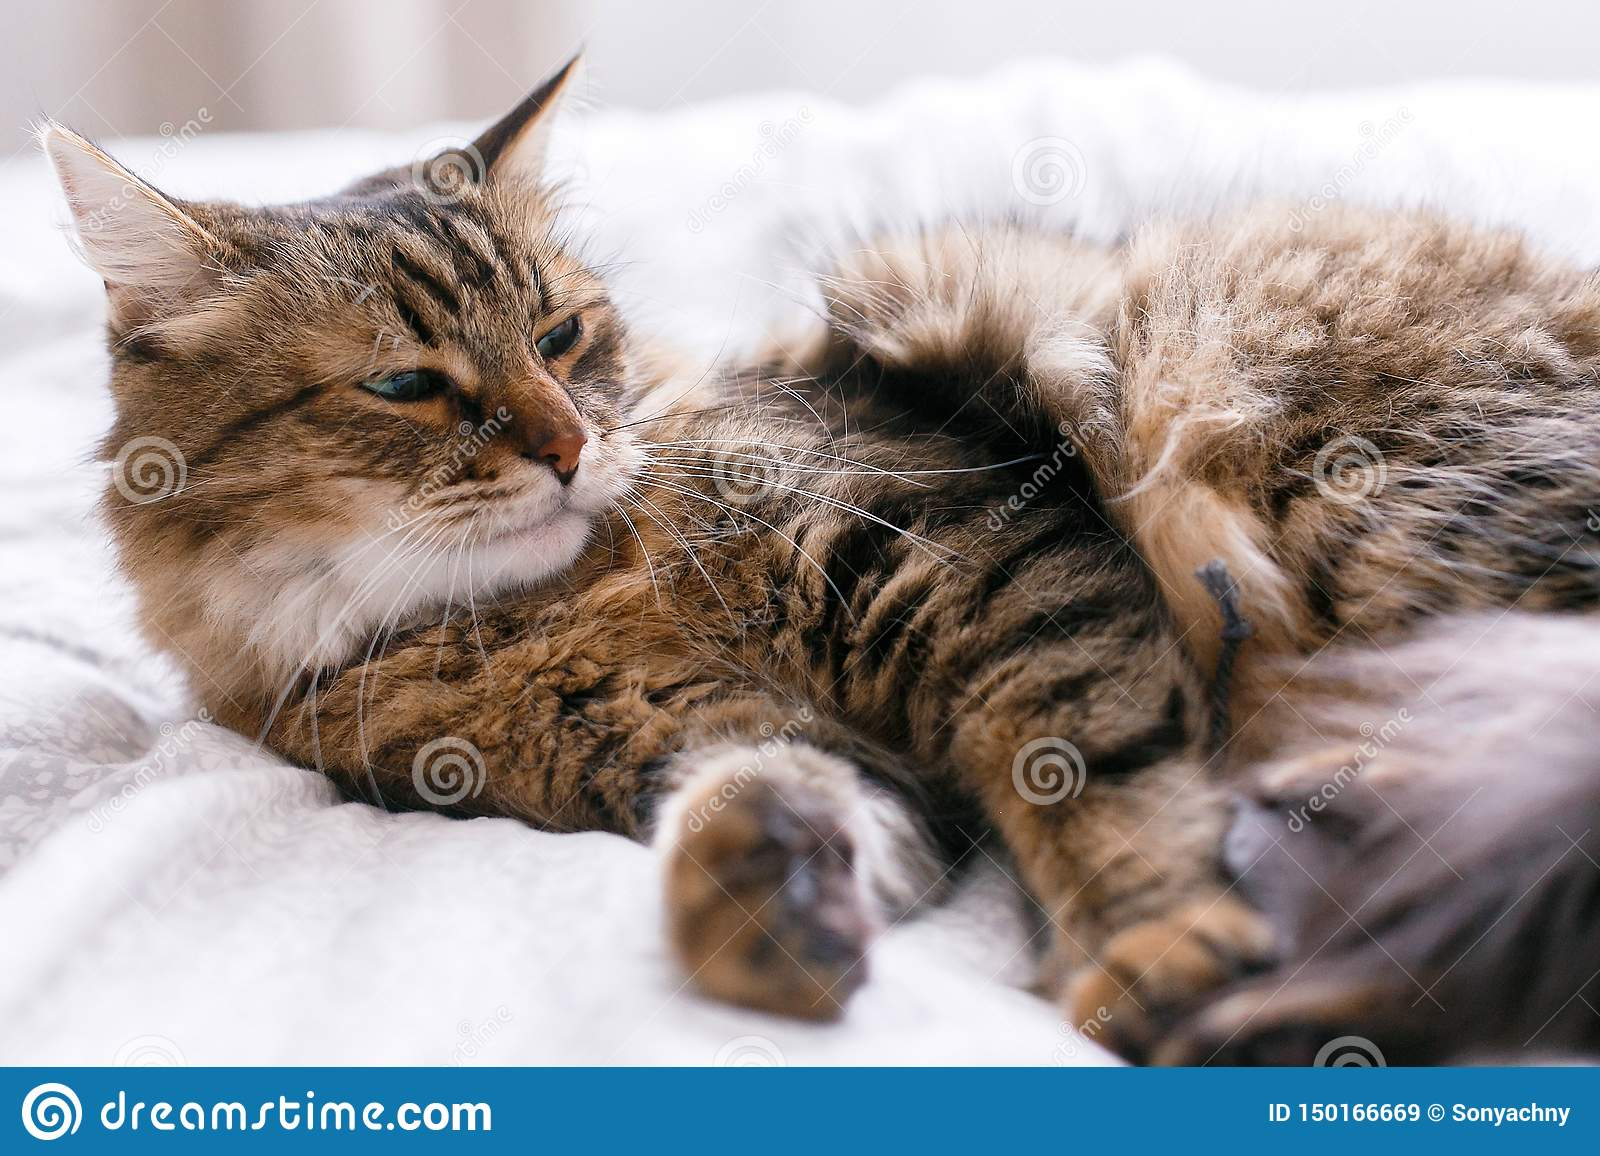 Cute cat playing with mouse toy on white bed in sunny stylish room. Maine coon with green eyes playing with with funny emotions on